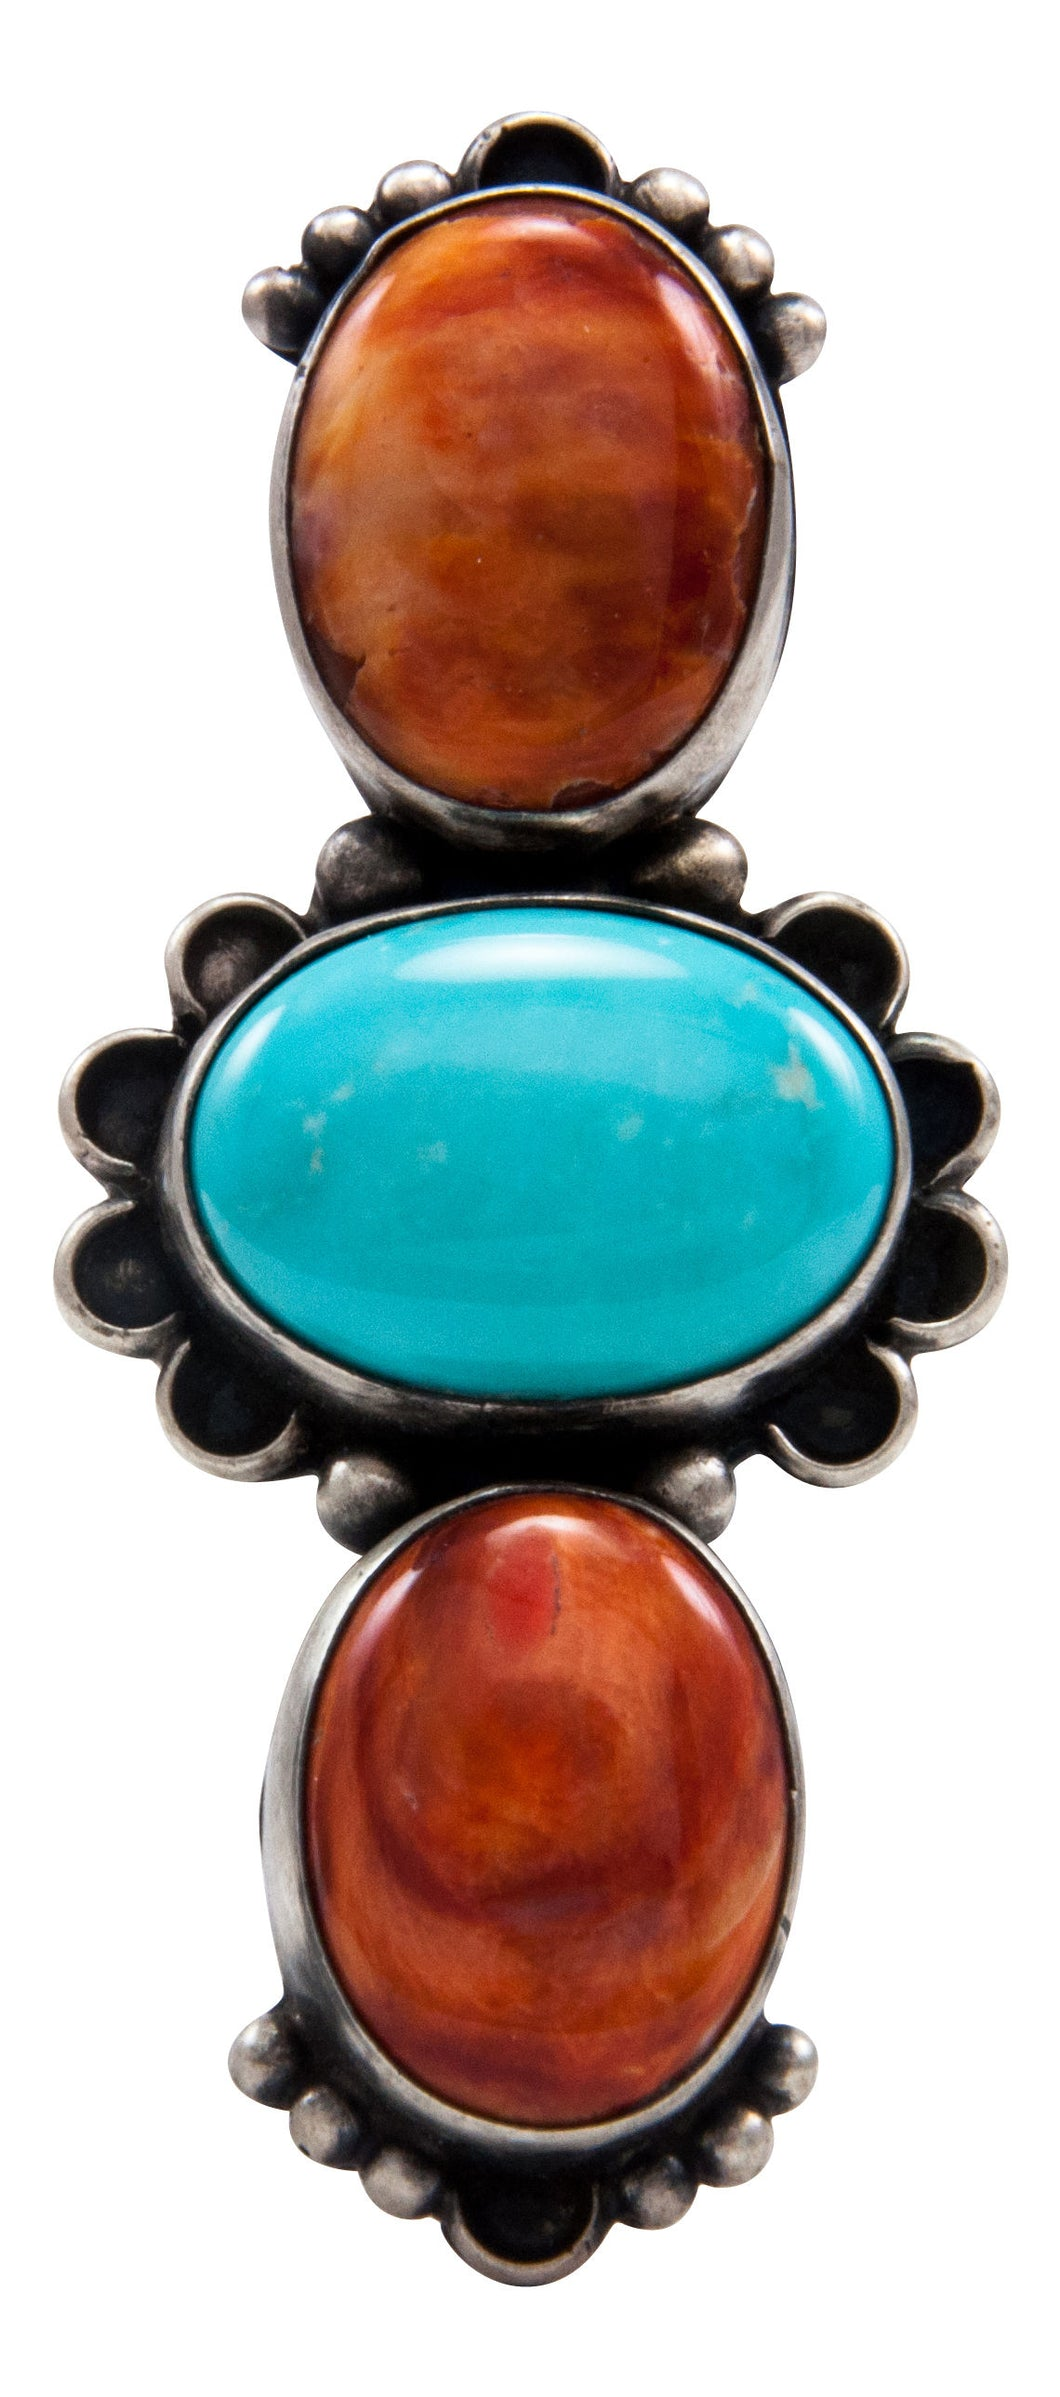 Navajo Native American Orange Shell and Turquoise Ring Size 6 1/4 by Kevin Willie SKU232077